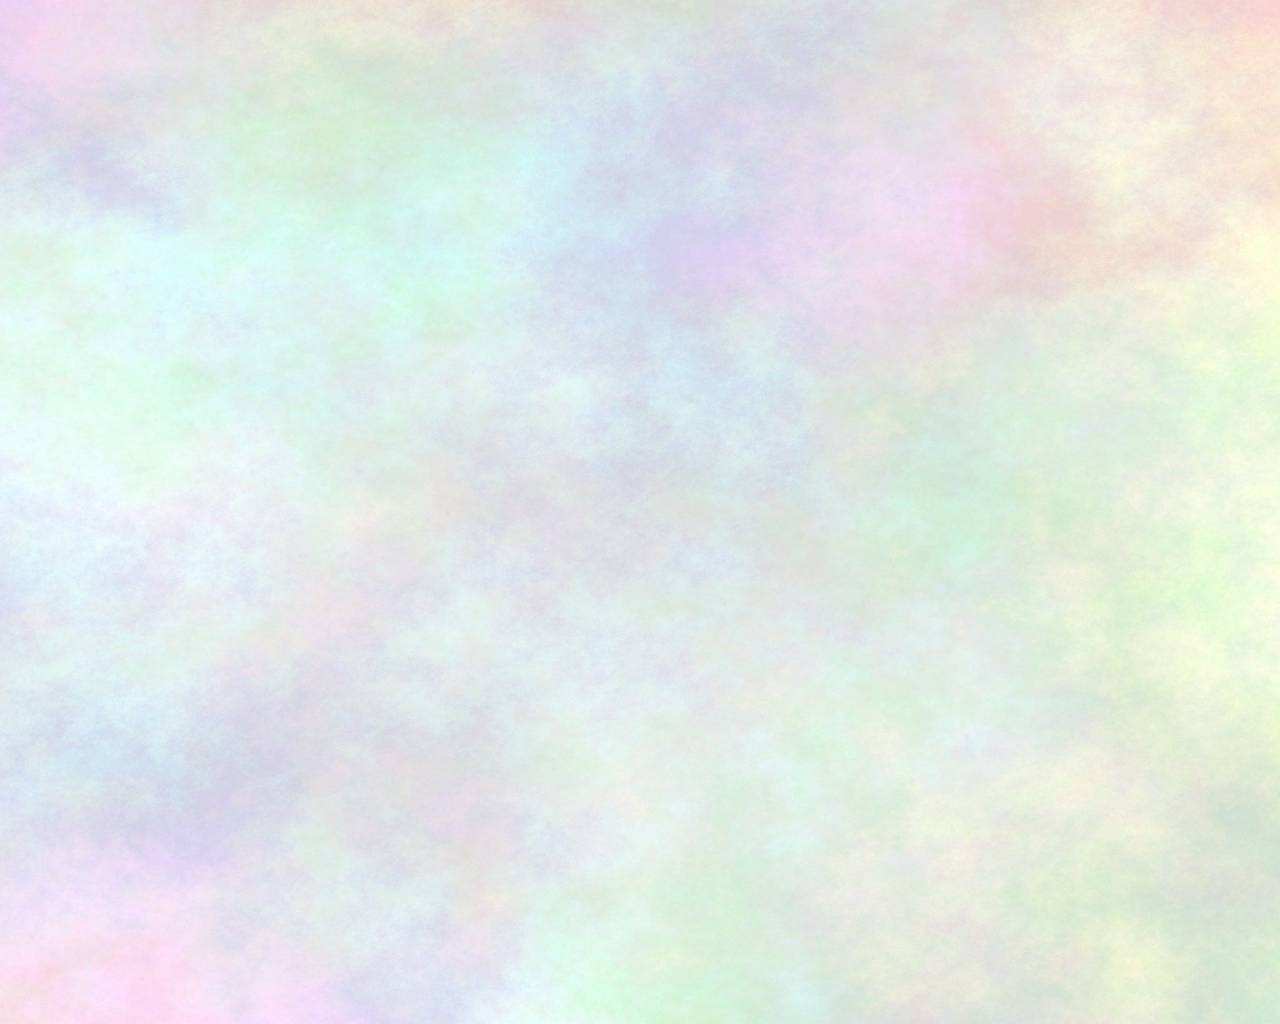 80 Pastel Android Iphone Desktop Hd Backgrounds Wallpapers 1080p 4k 1280x1024 2021